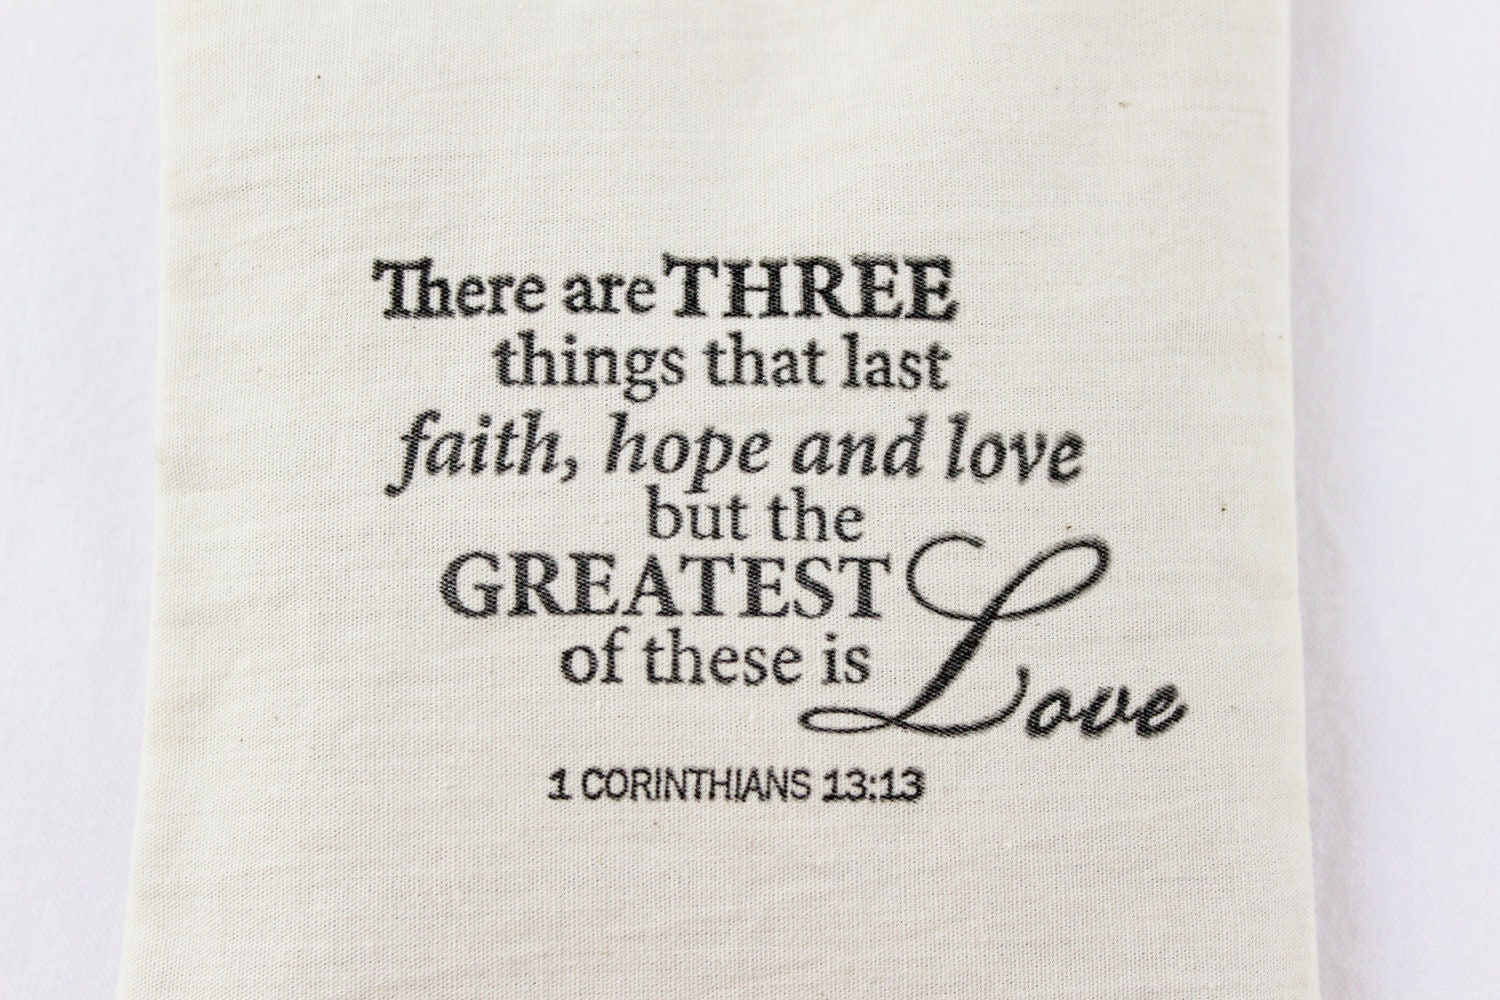 Love Bible Quotes Faith Hope Love Lavender Sachet 1 Corinthians 13 Bible Verse